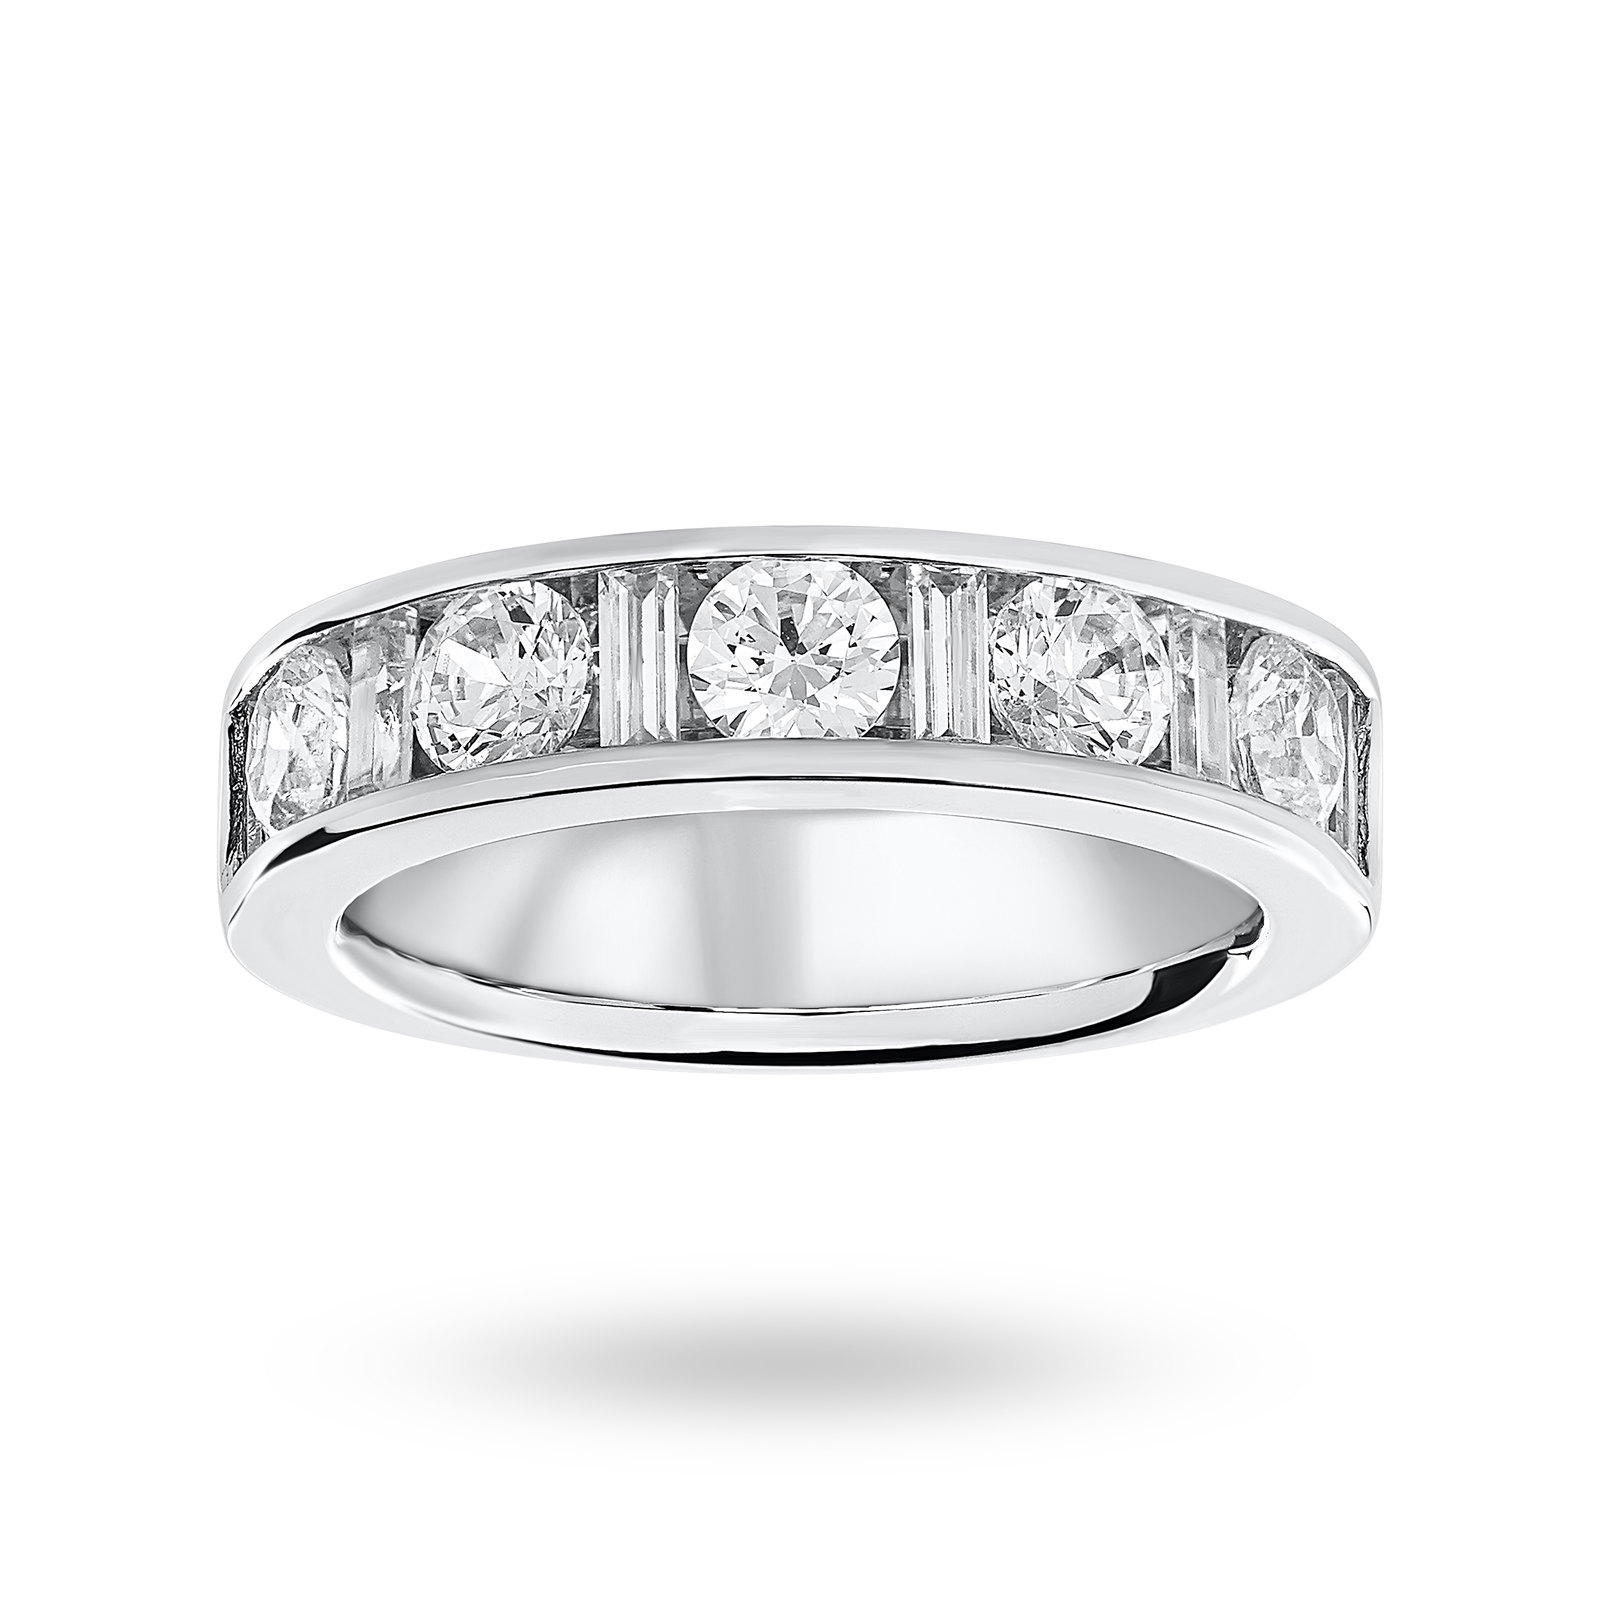 Platinum 1.45 Carat Dot Dash Half Eternity Ring